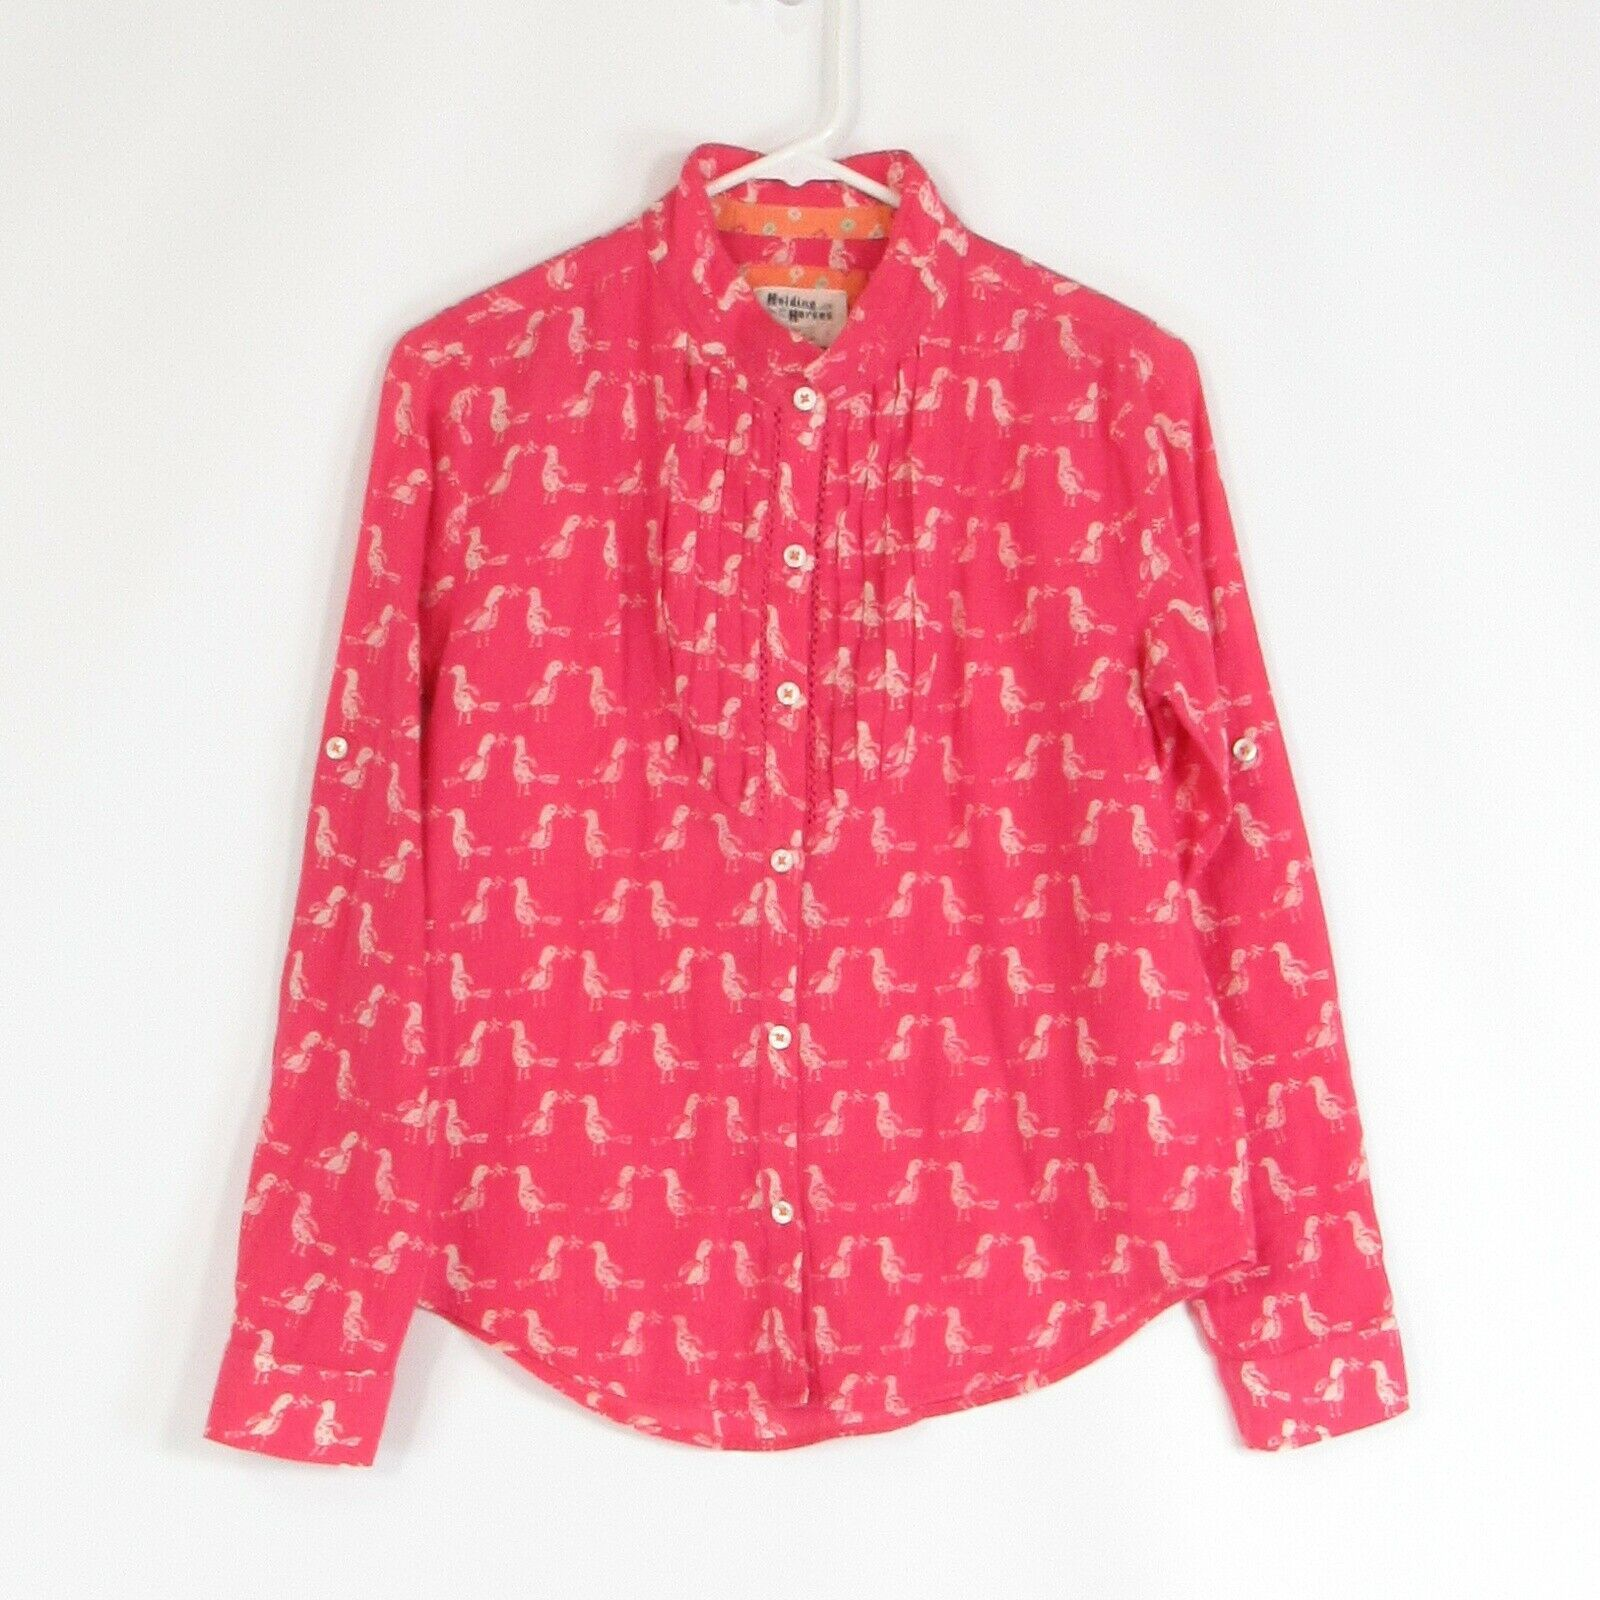 Primary image for Pink white birds 100% cotton HOLDING HORSES button down blouse 2